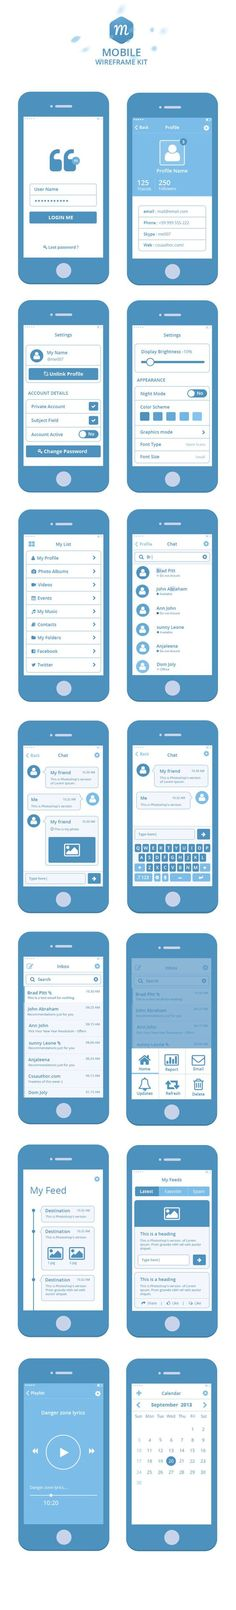 Free Wireframe Kit by prasad prechu, via Behance #mobile #app #wireframe: